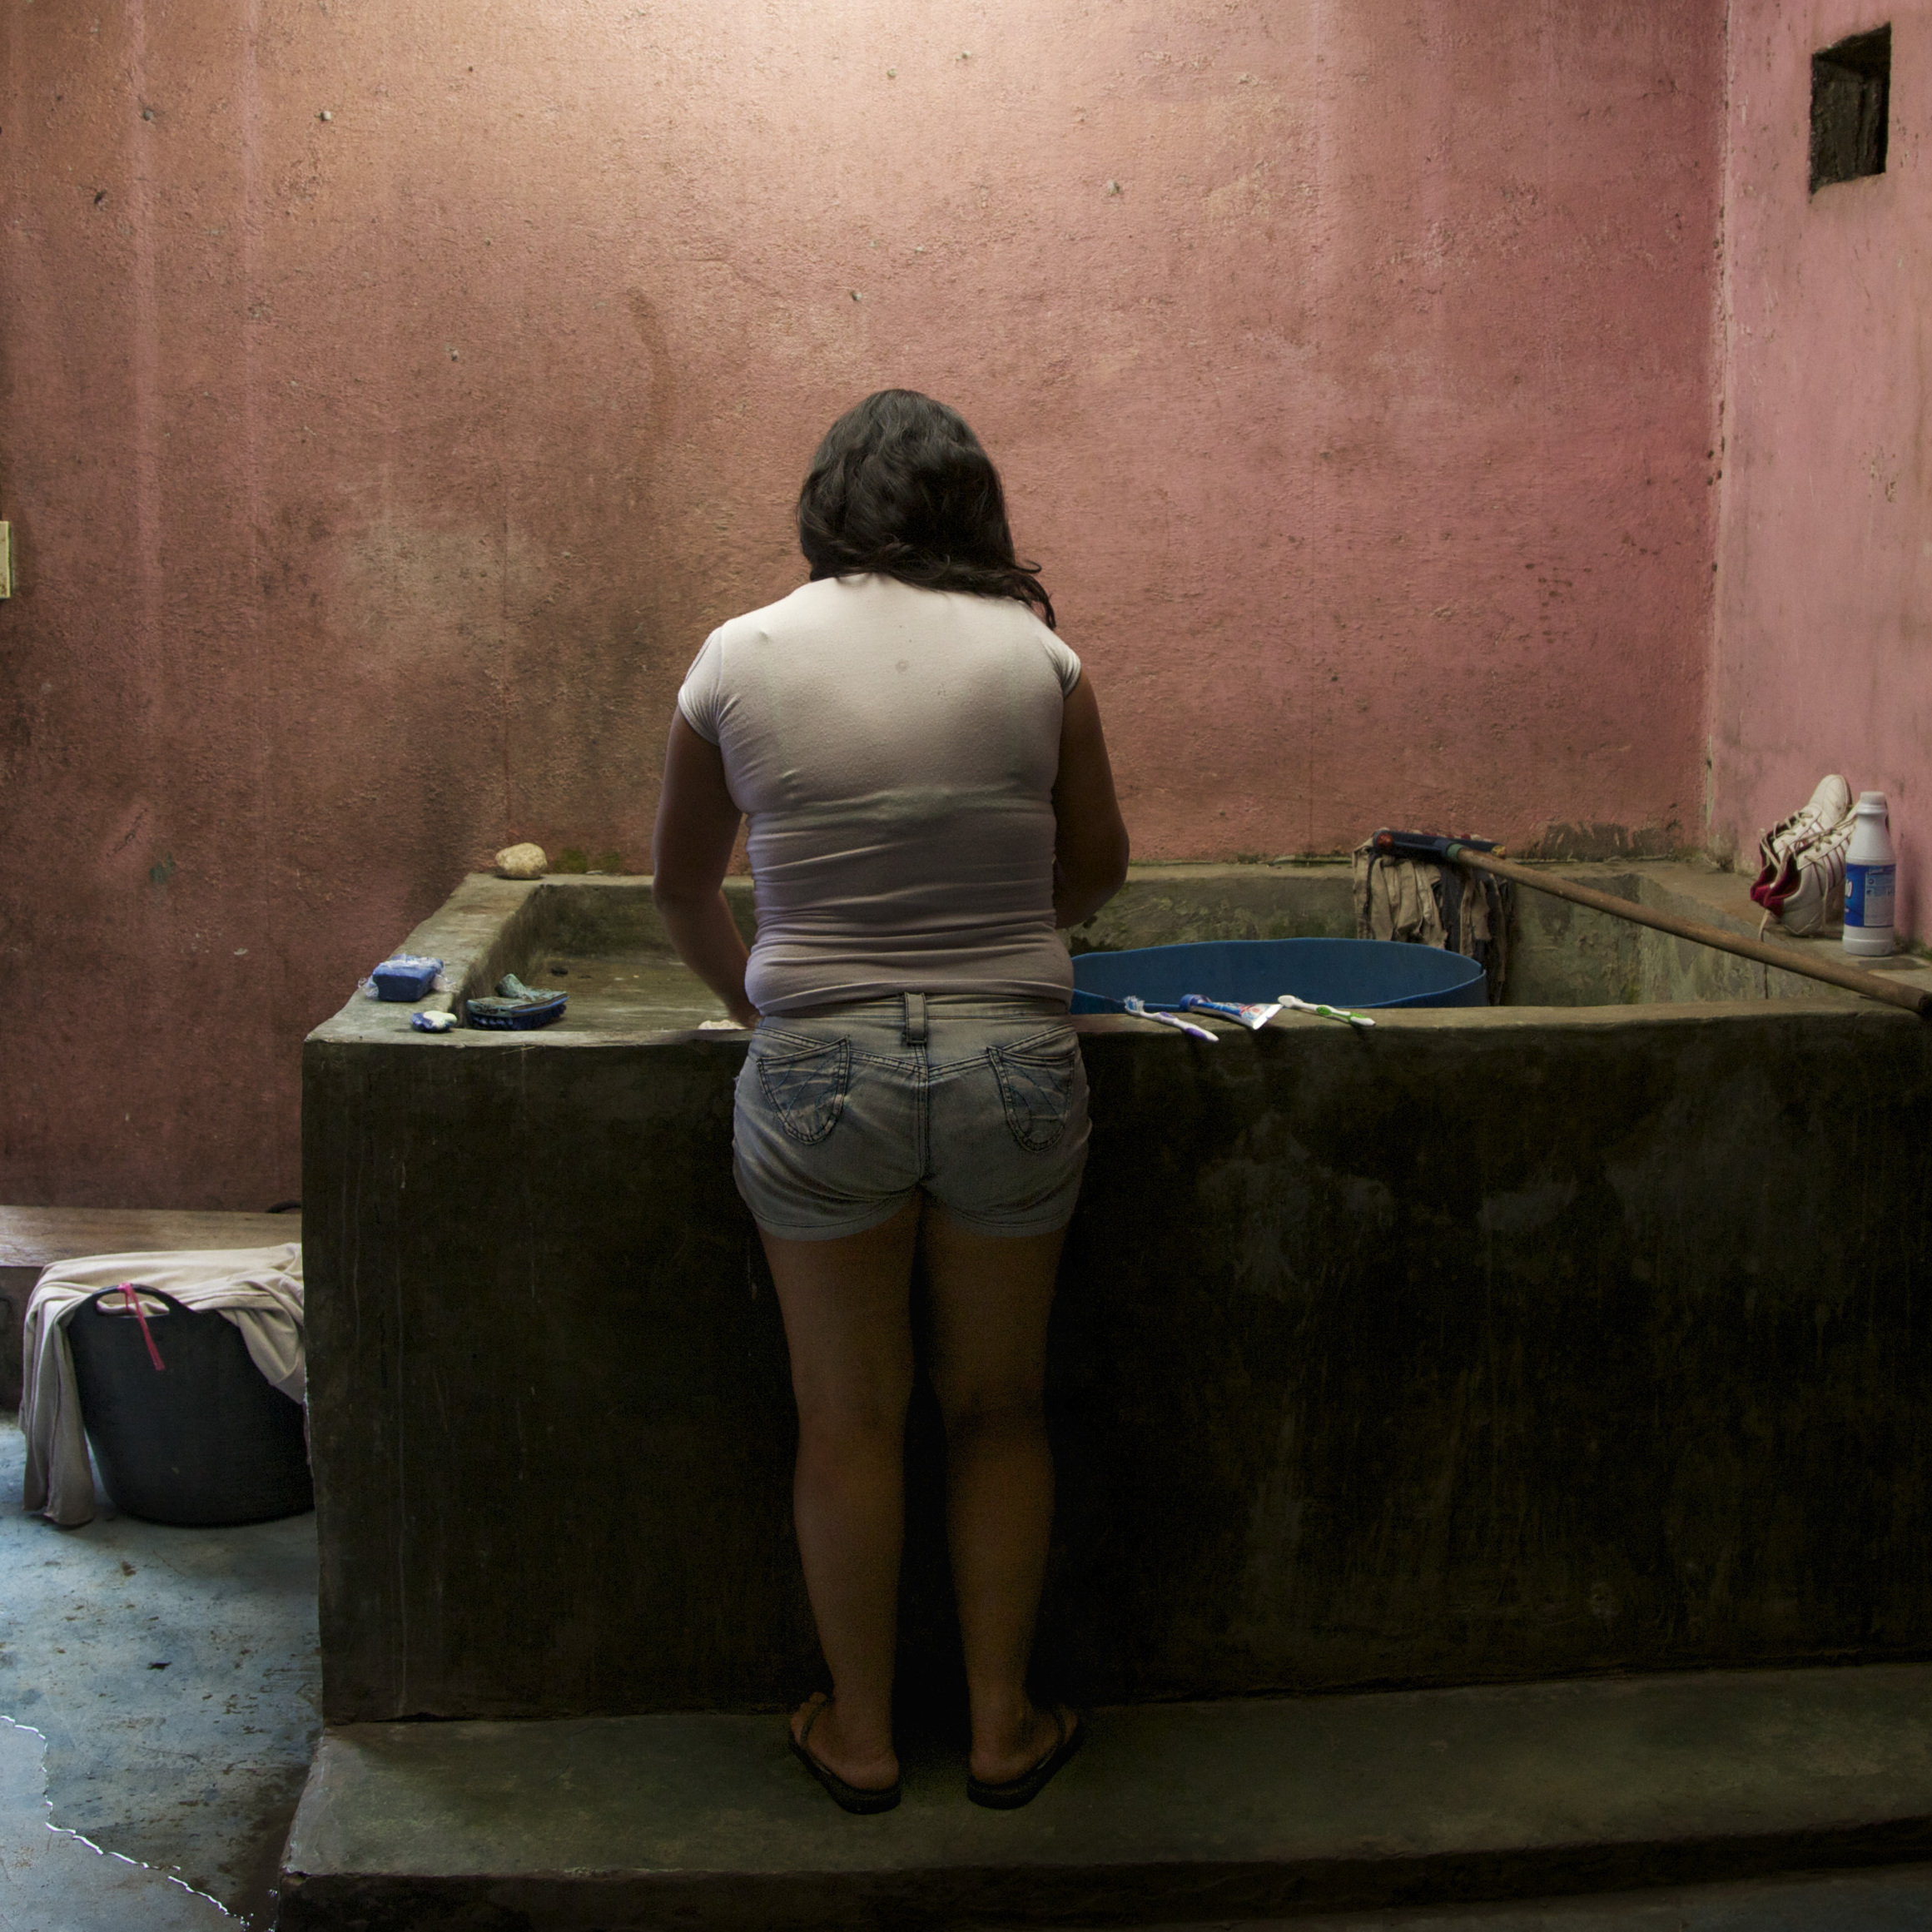 Isabel Narvaez, in El Placer, says she is still traumatized by the rape she suffered. The small hamlet in Colombia is just one place where women were victims of violent crimes during the civil conflict.